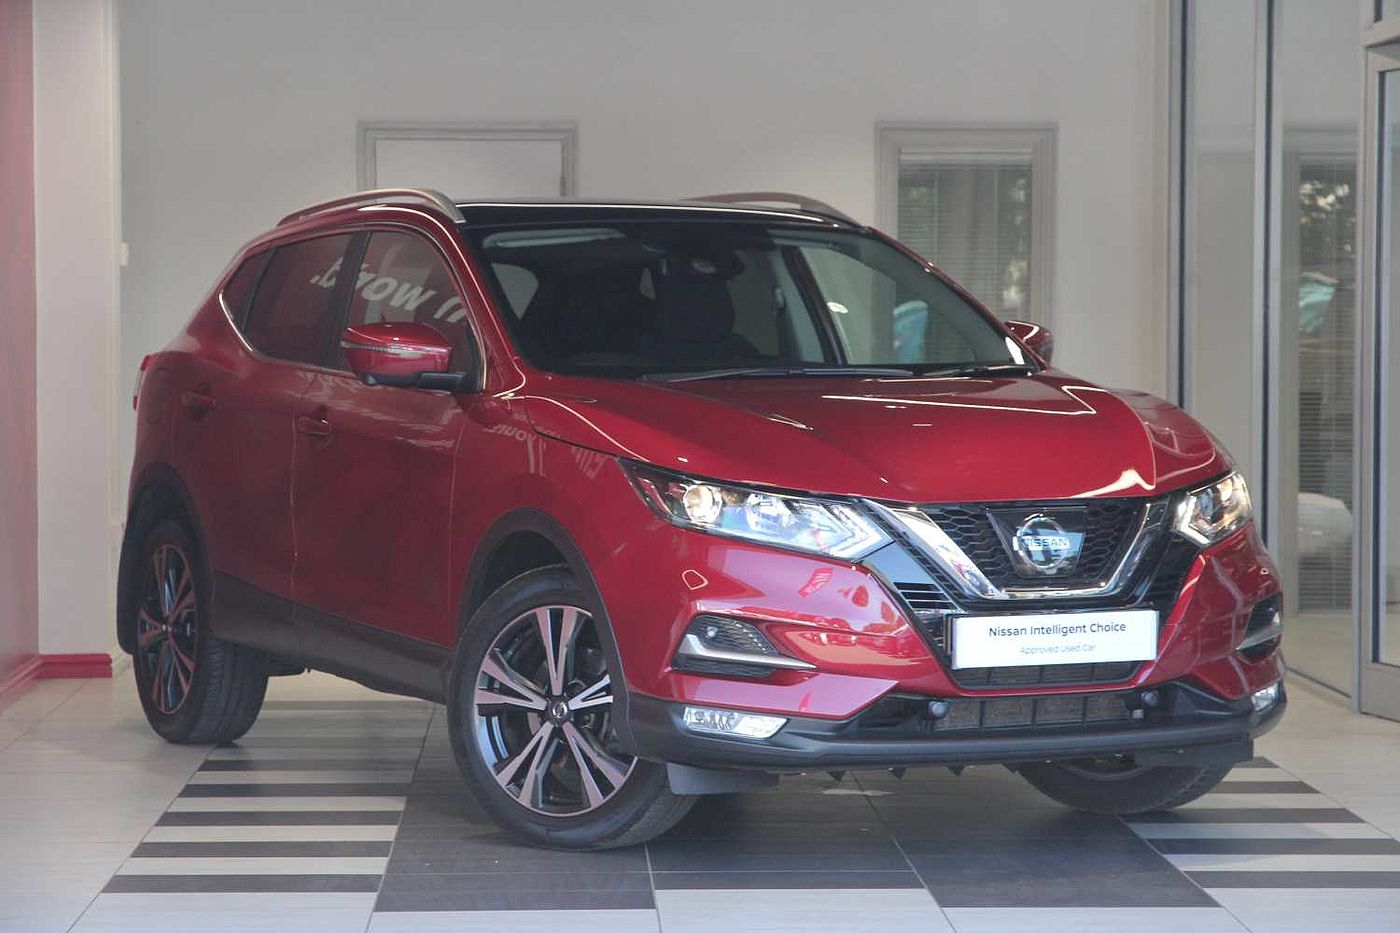 nissan qashqai red for sale in peterborough nissan used cars uk mdx n5bqjzd. Black Bedroom Furniture Sets. Home Design Ideas